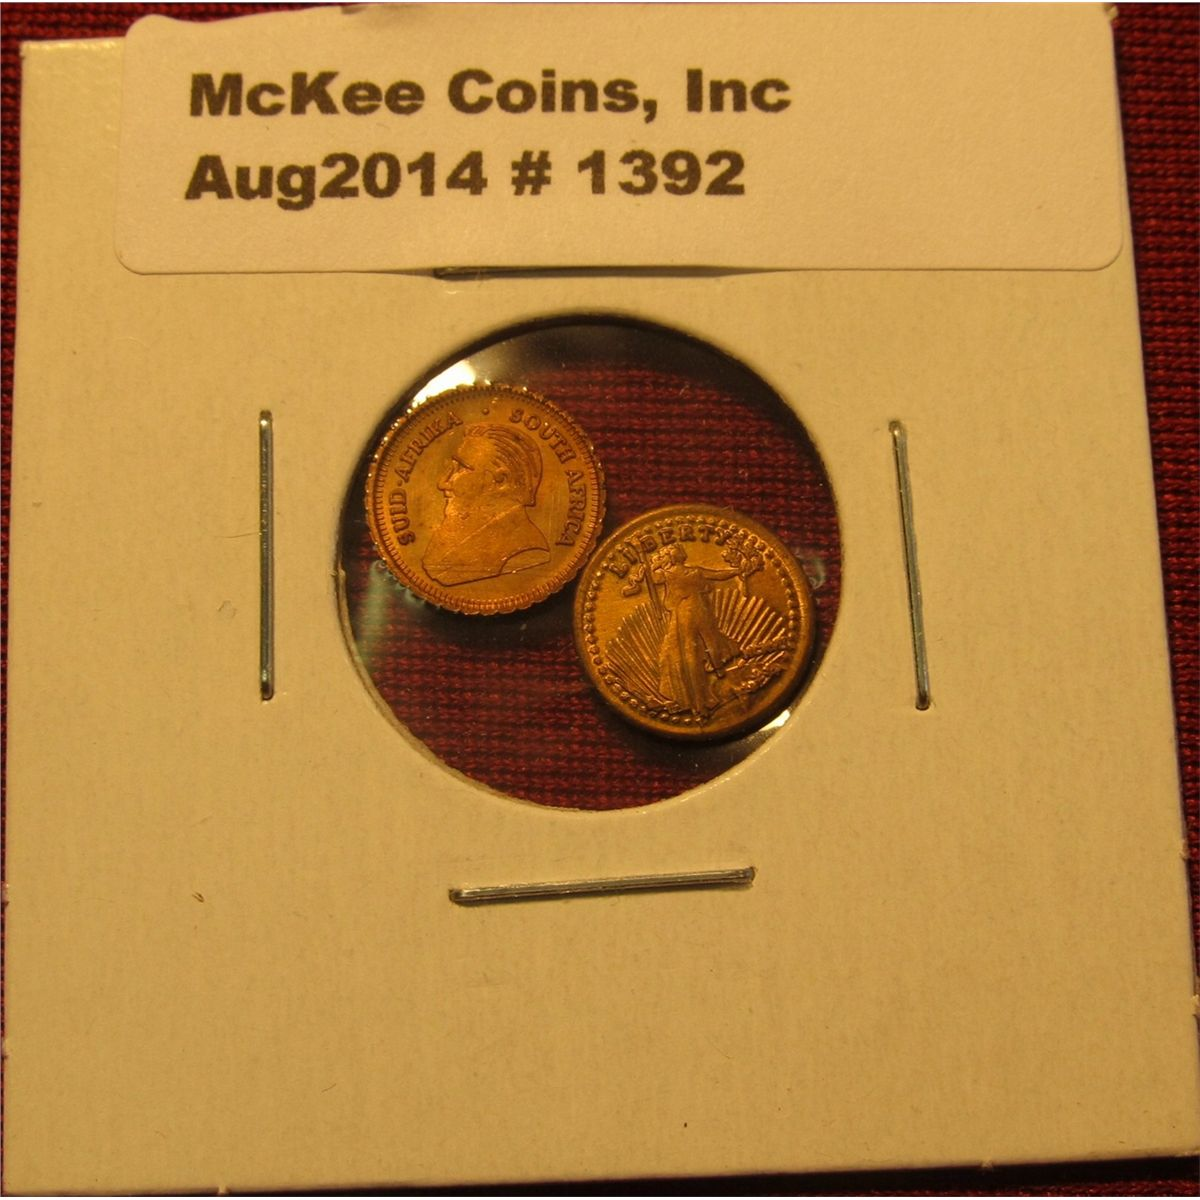 Image 1 : 1392. Mini-money – 2 miniature versions of gold coins ...